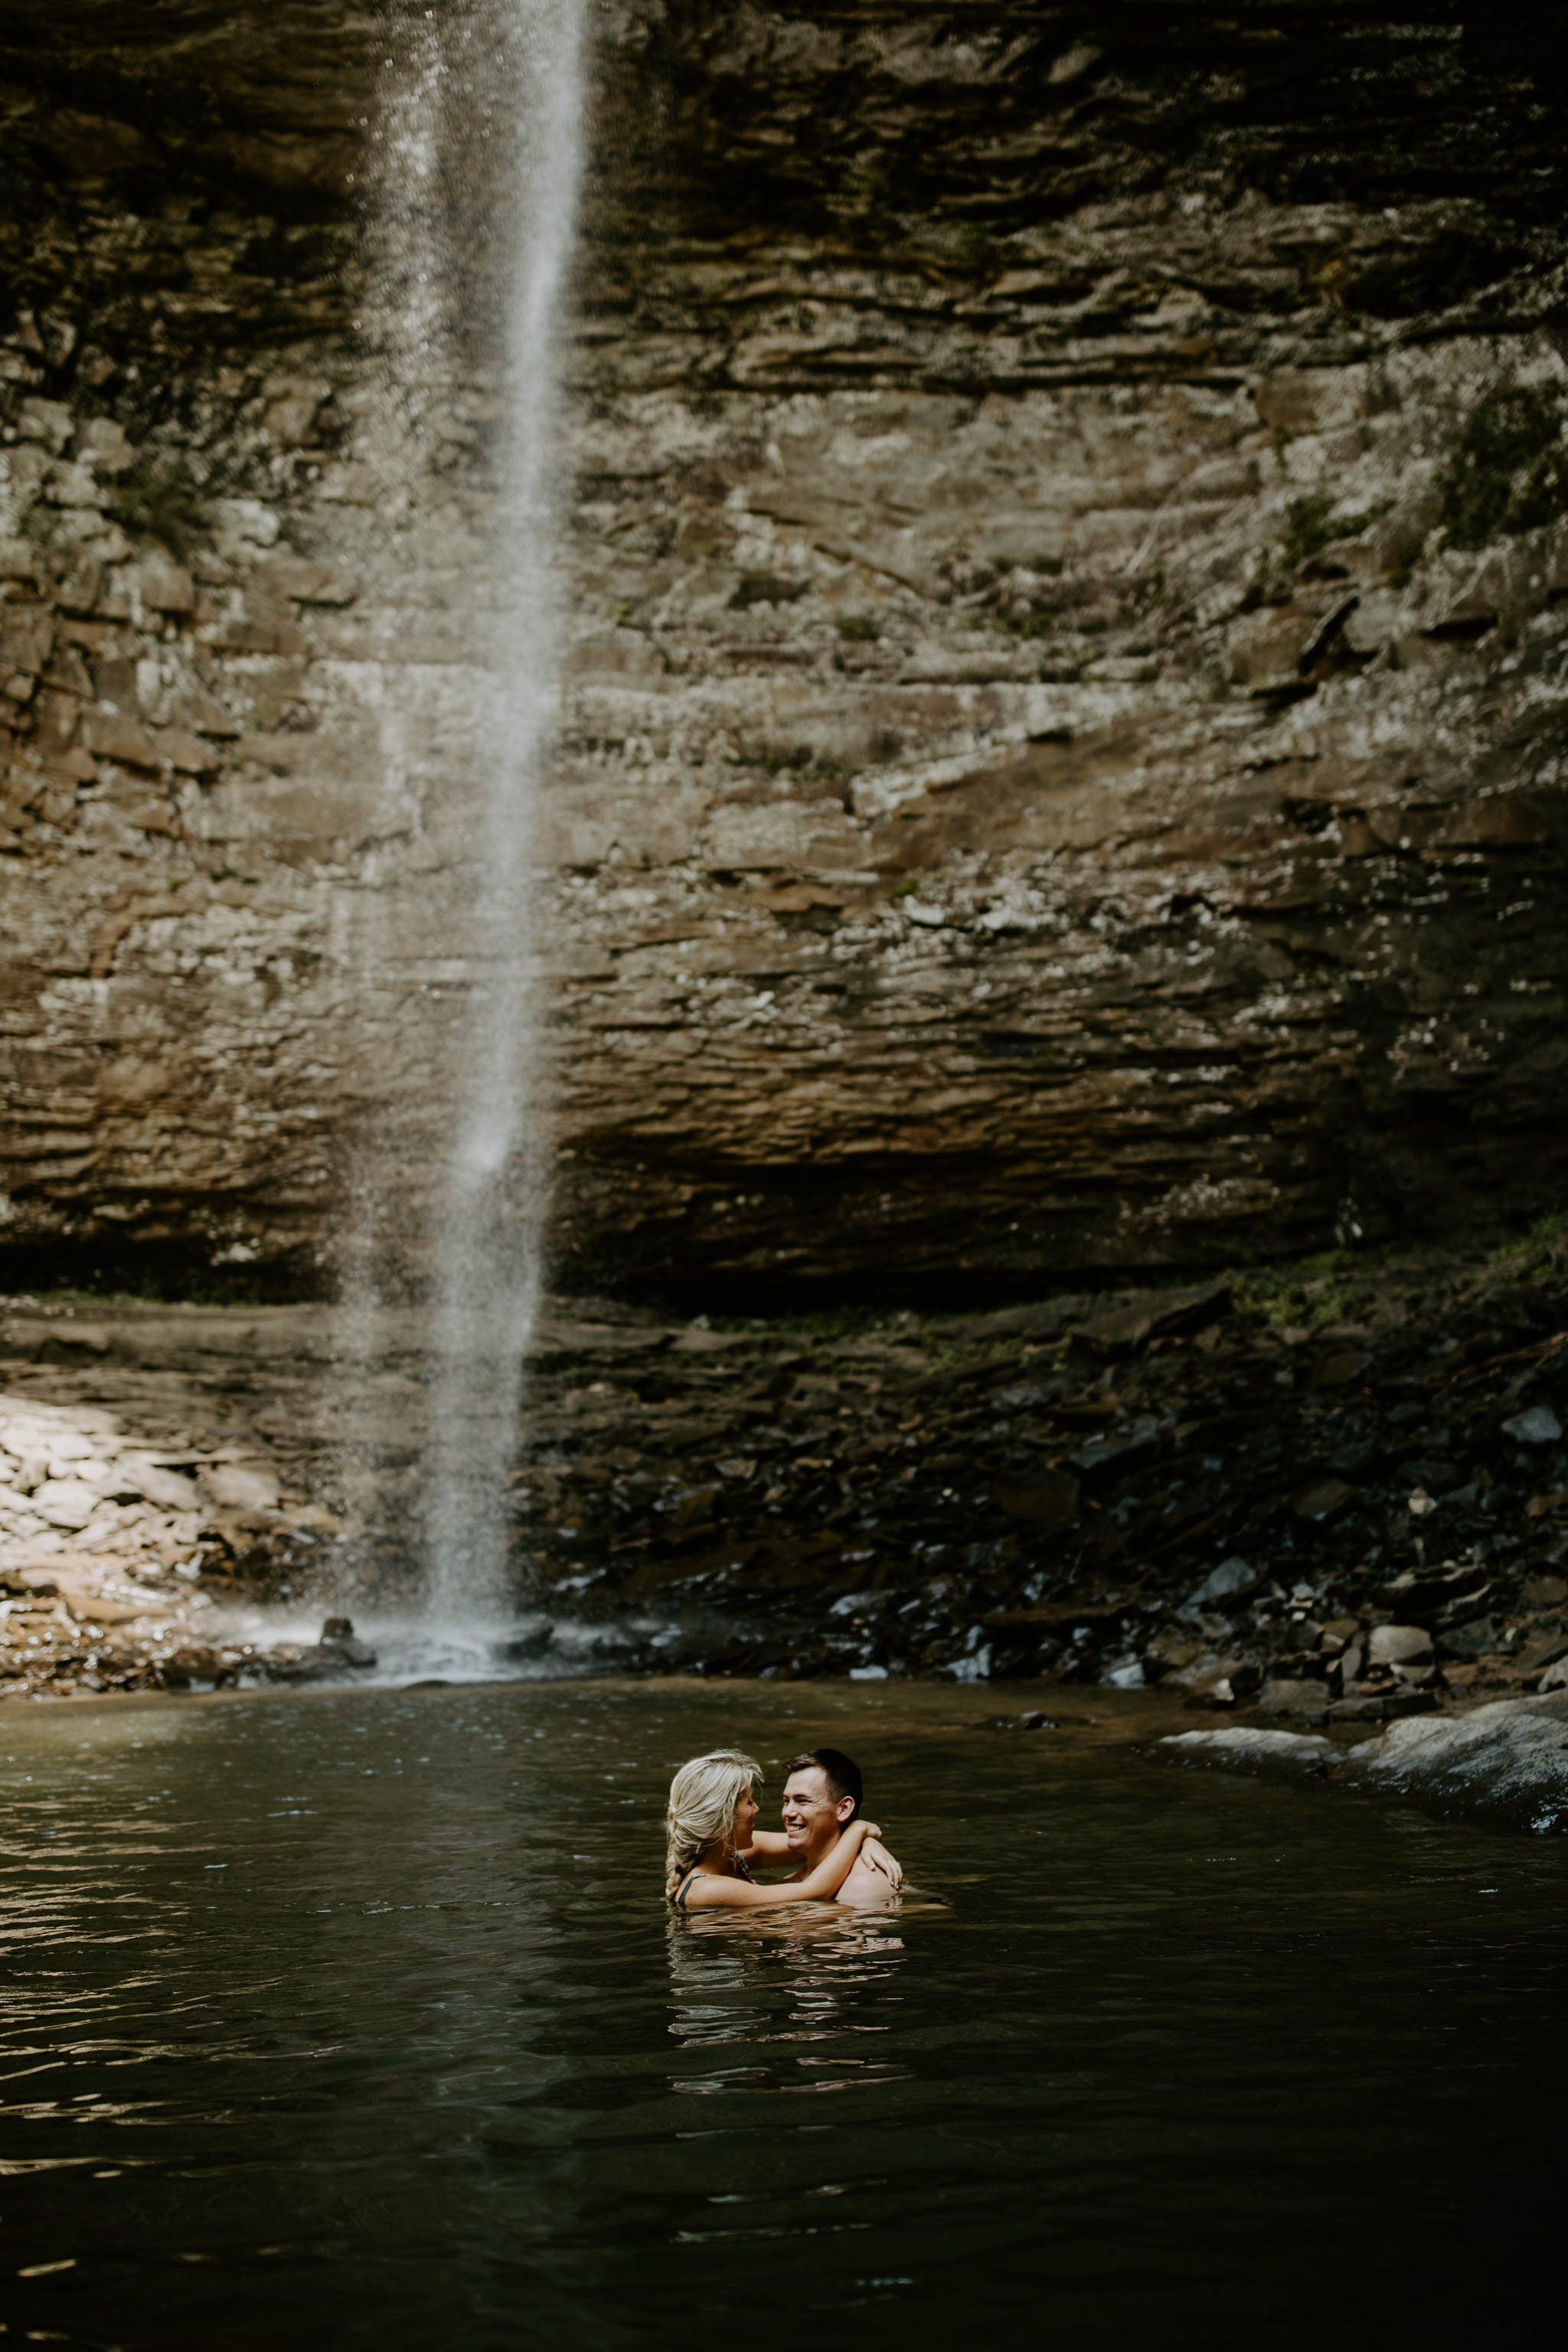 Adventure Lake Engagement Session at Waterfalls in Tennessee